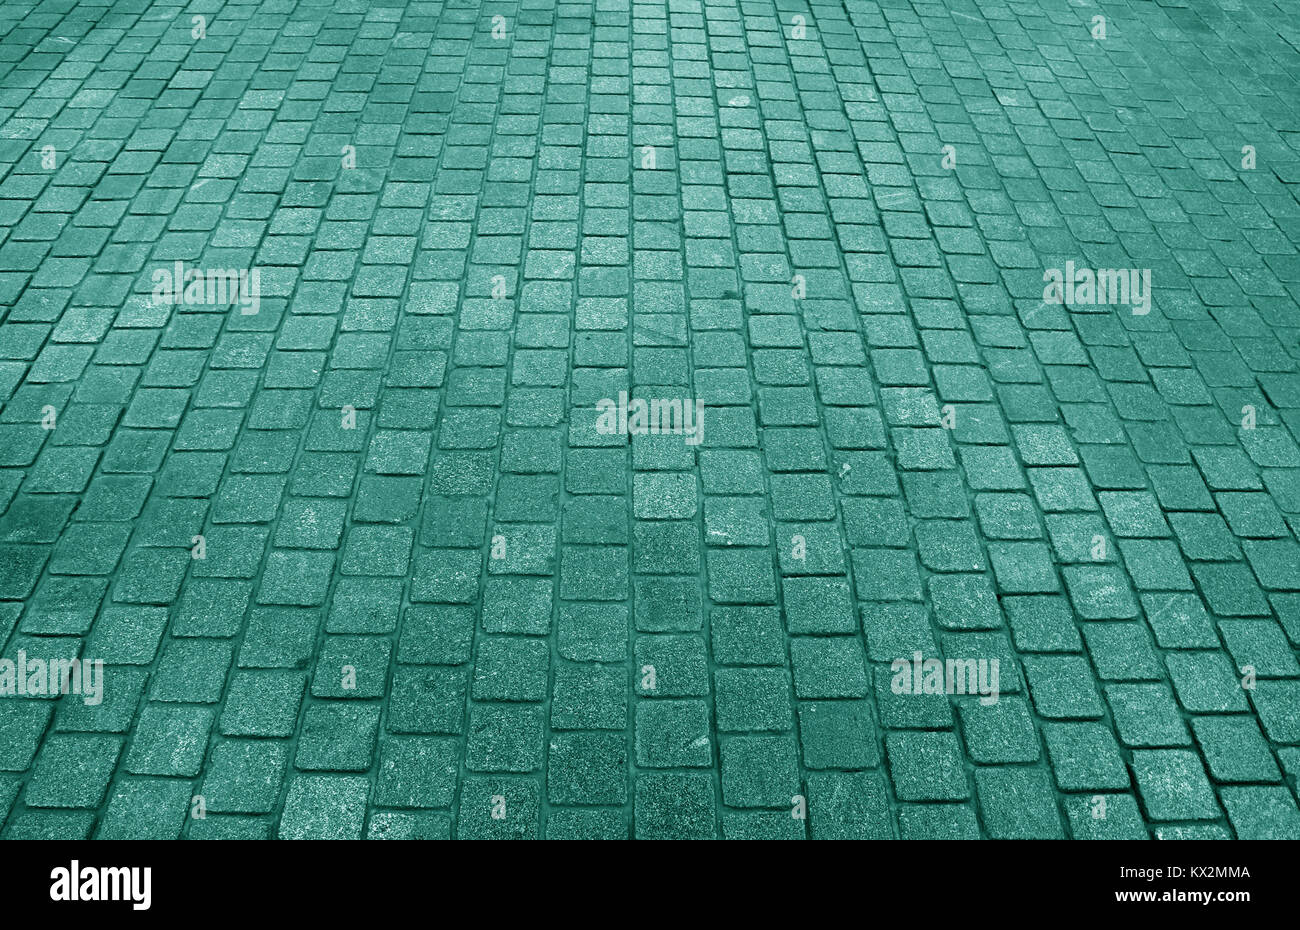 Block paved pathway in sea green color, for background, pattern - Stock Image